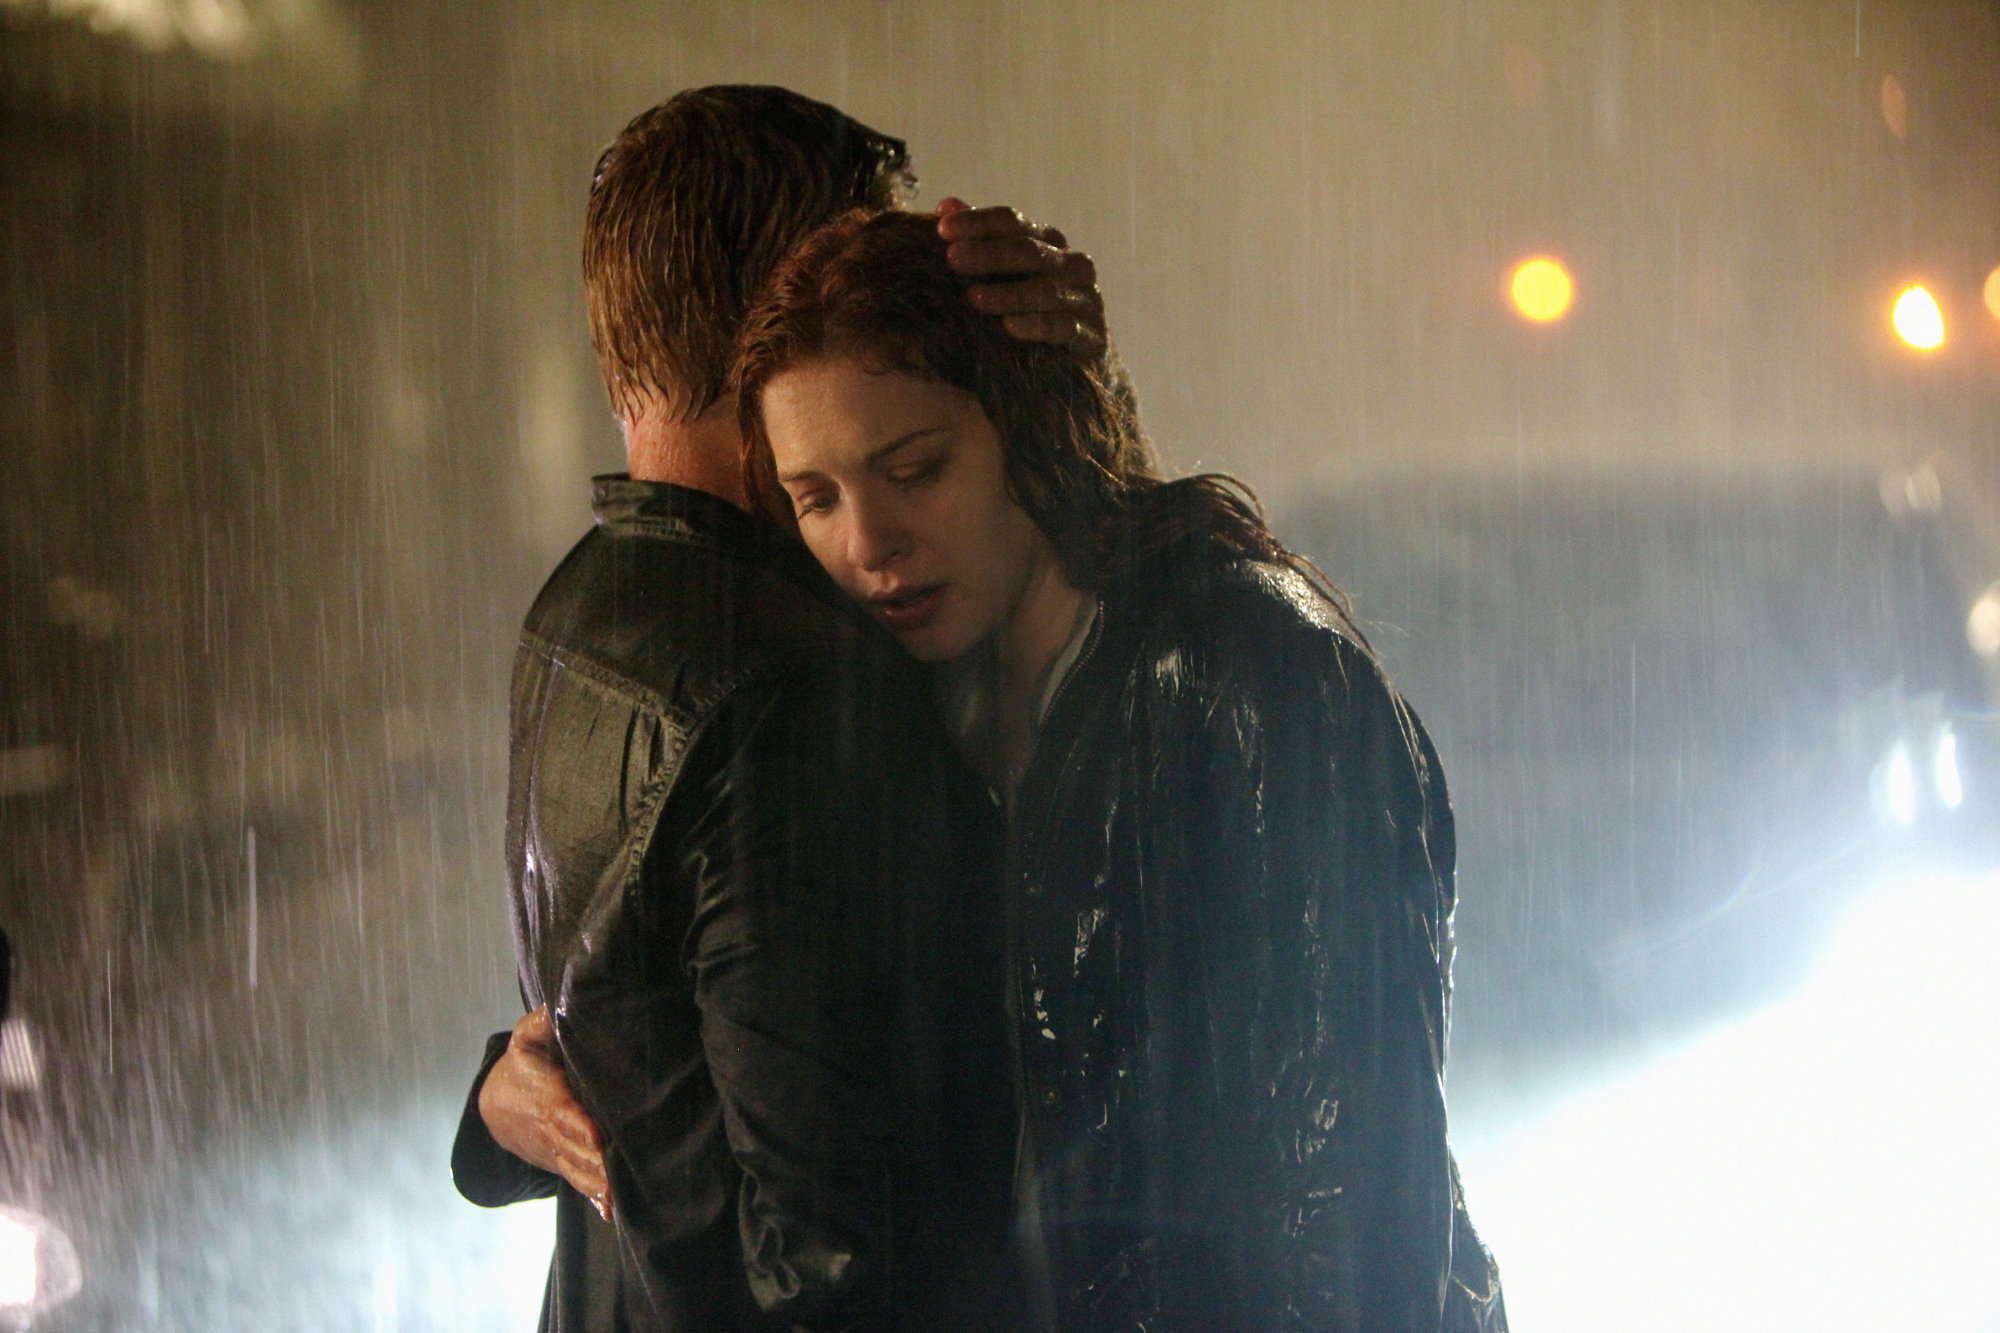 7. And hugged in the rain